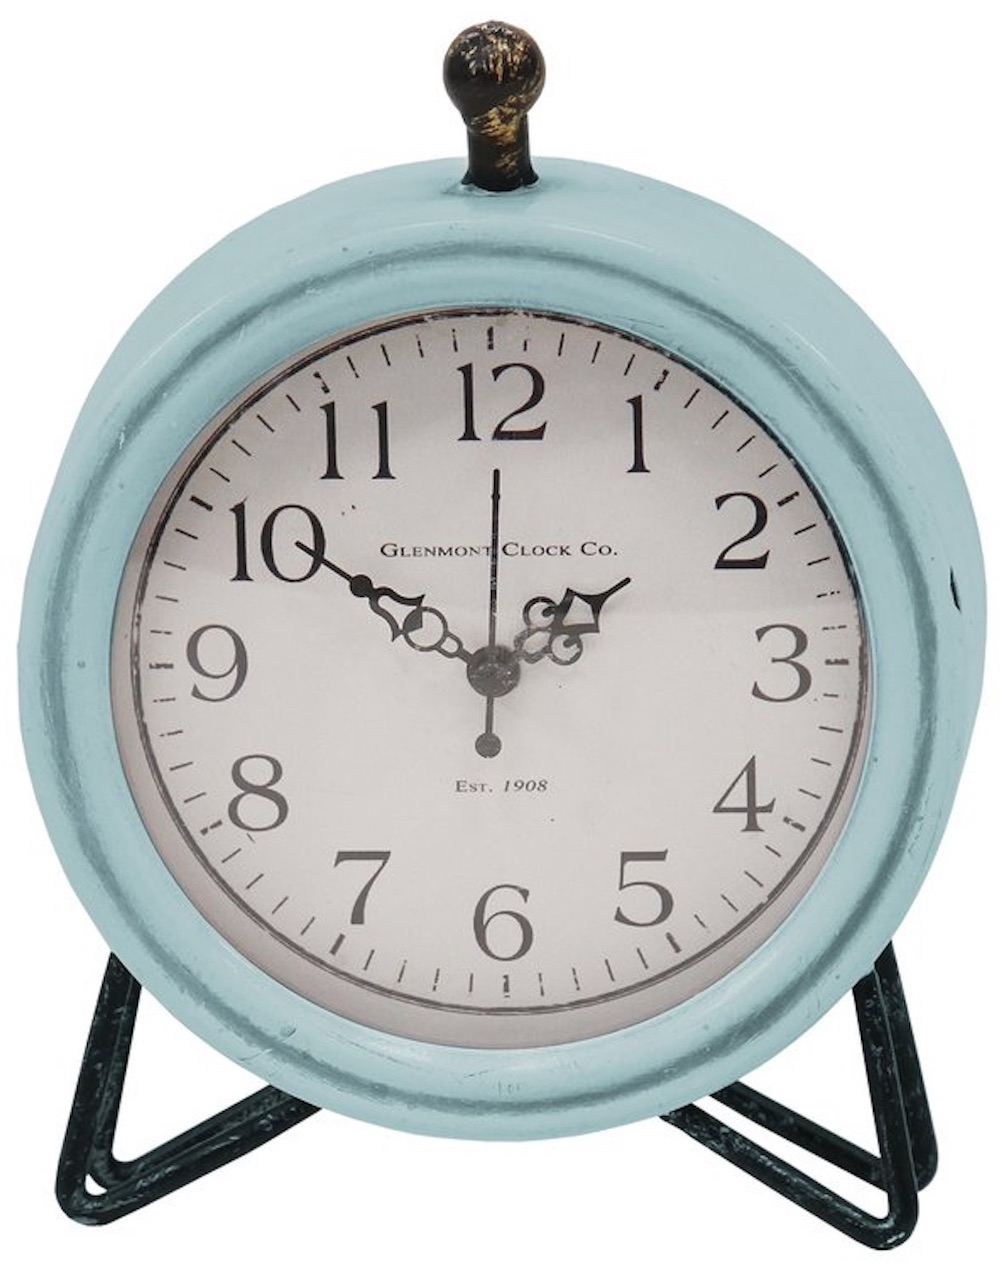 Clocks with Vintage Style Dixie Tabletop Clock #Clocks #MantleClocks #Timepiece #TableTopDecor #Decor